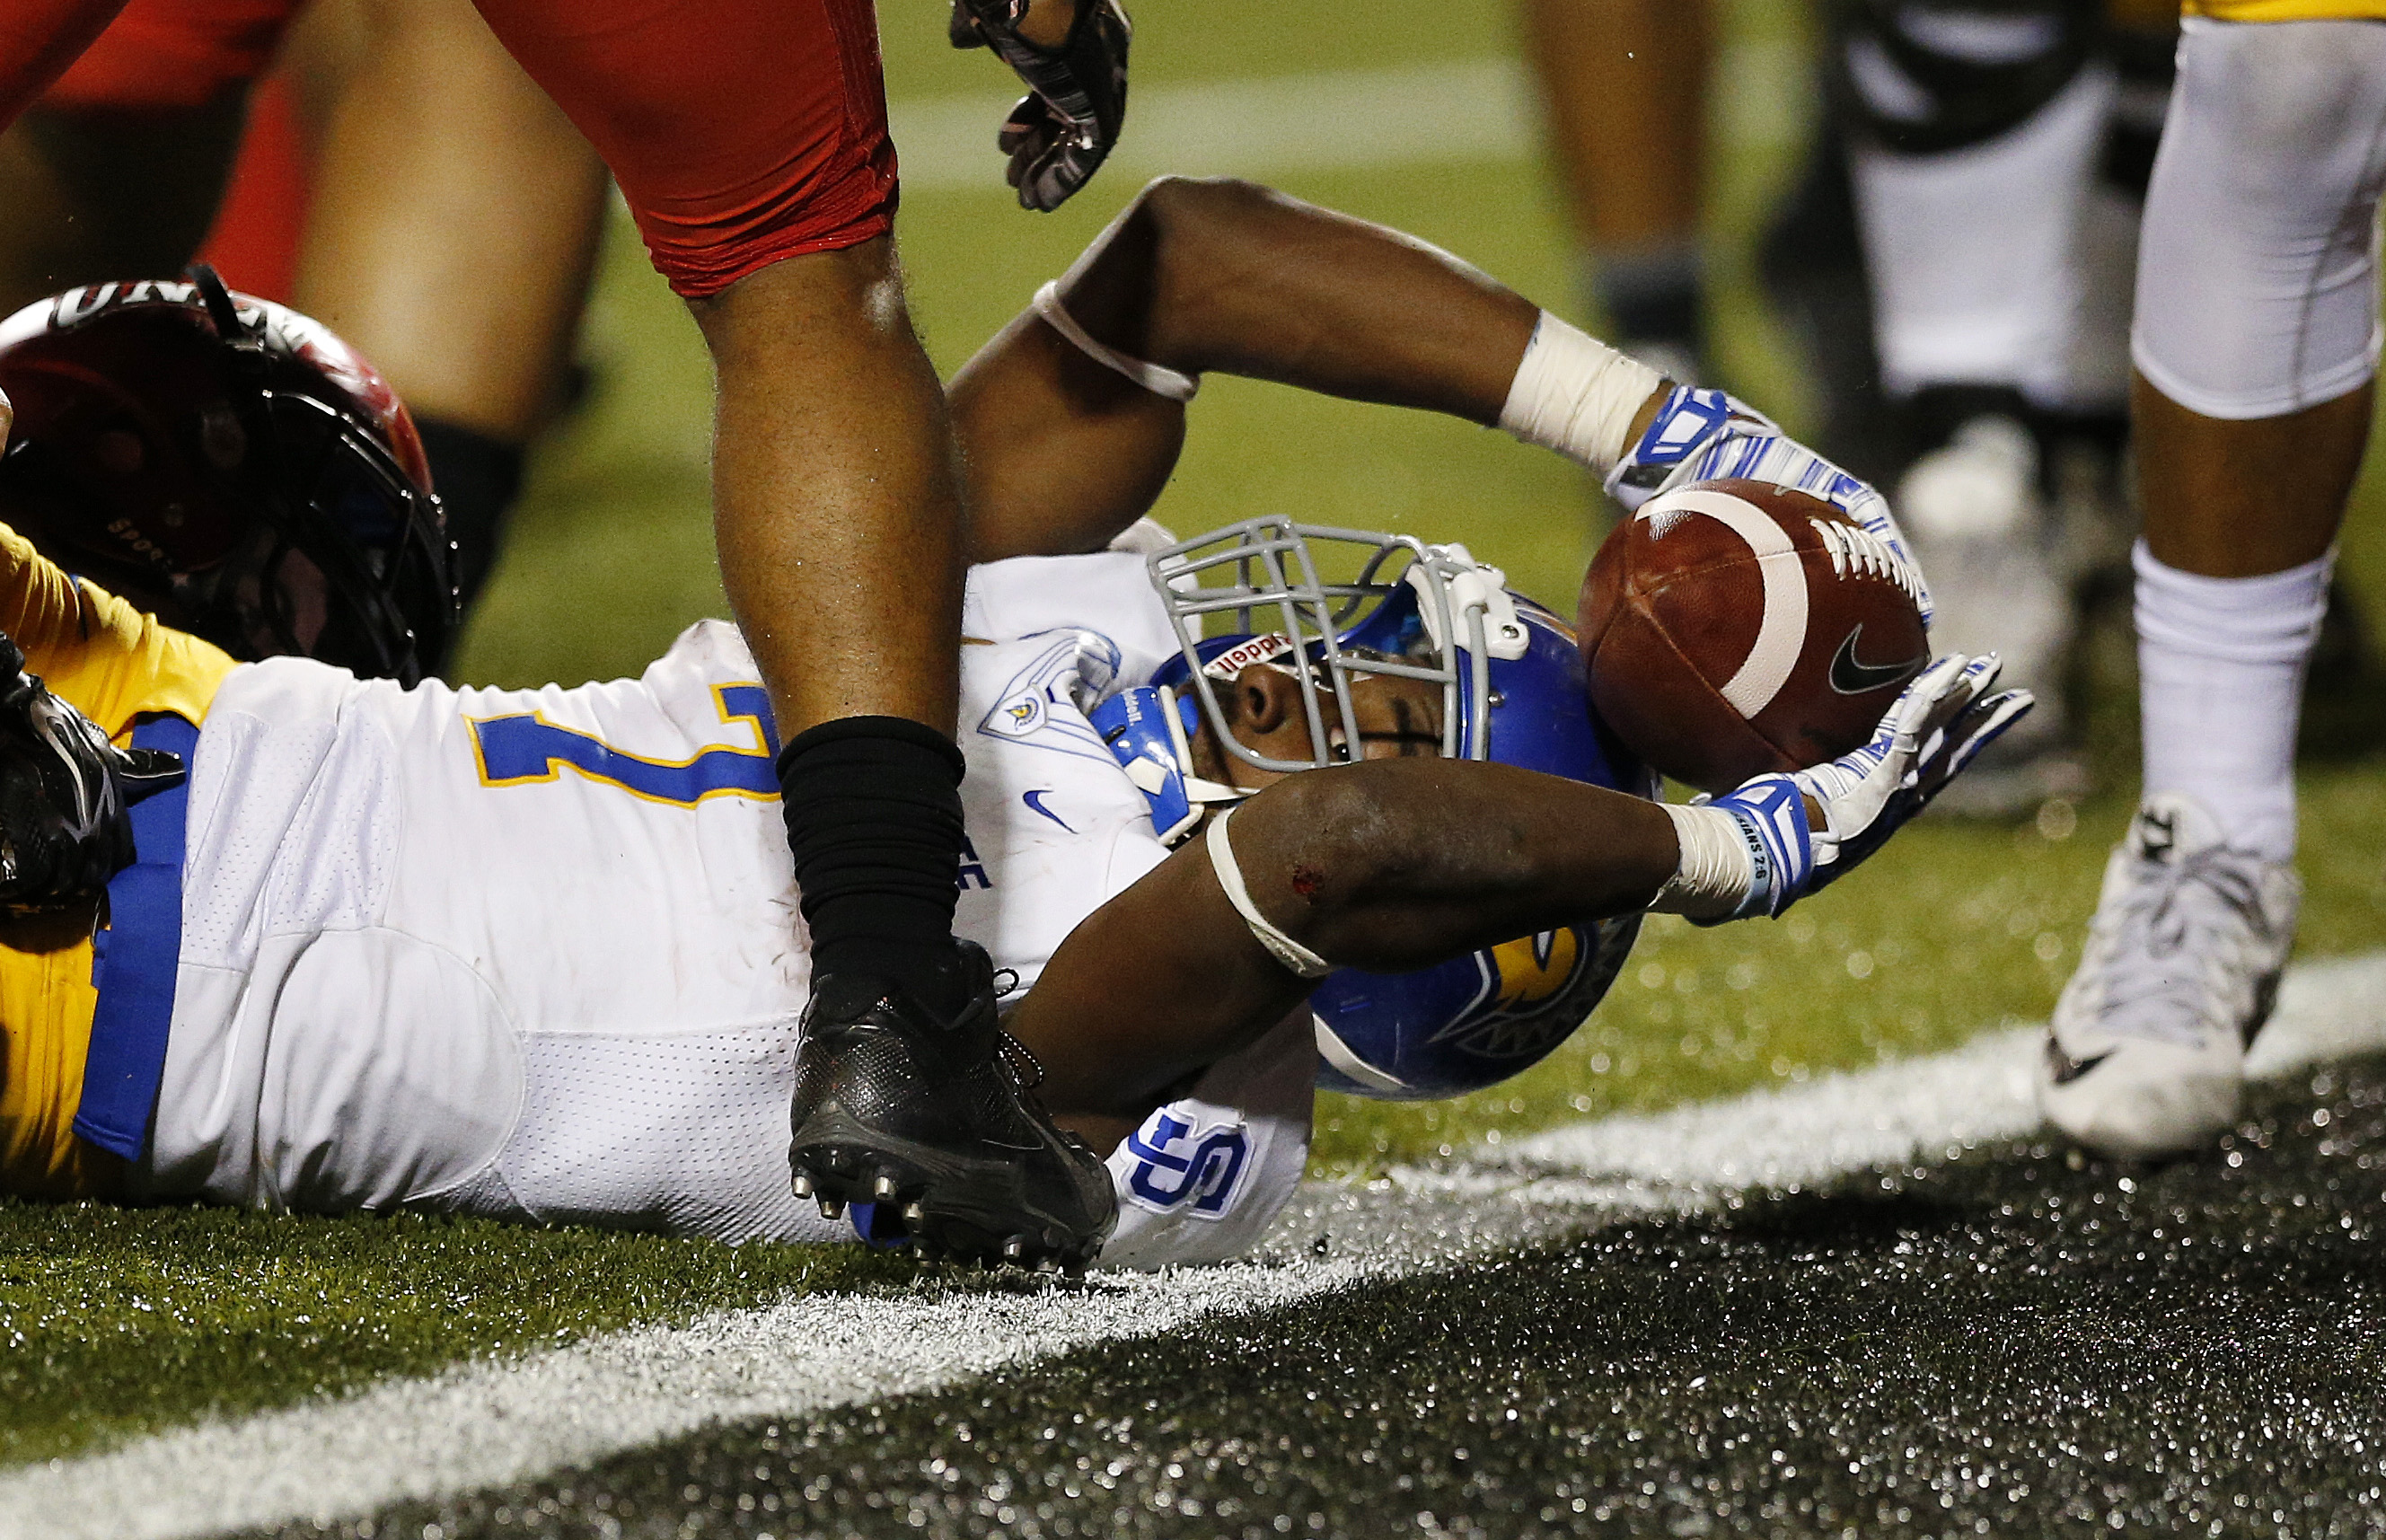 San Jose State running back Tyler Ervin (7) stretches into the end zone to score a game-winning touchdown in overtime against UNLV during an NCAA college football game Saturday, Oct. 10, 2015, in Las Vegas. San Jose State won 33-27. (AP Photo/John Locher)